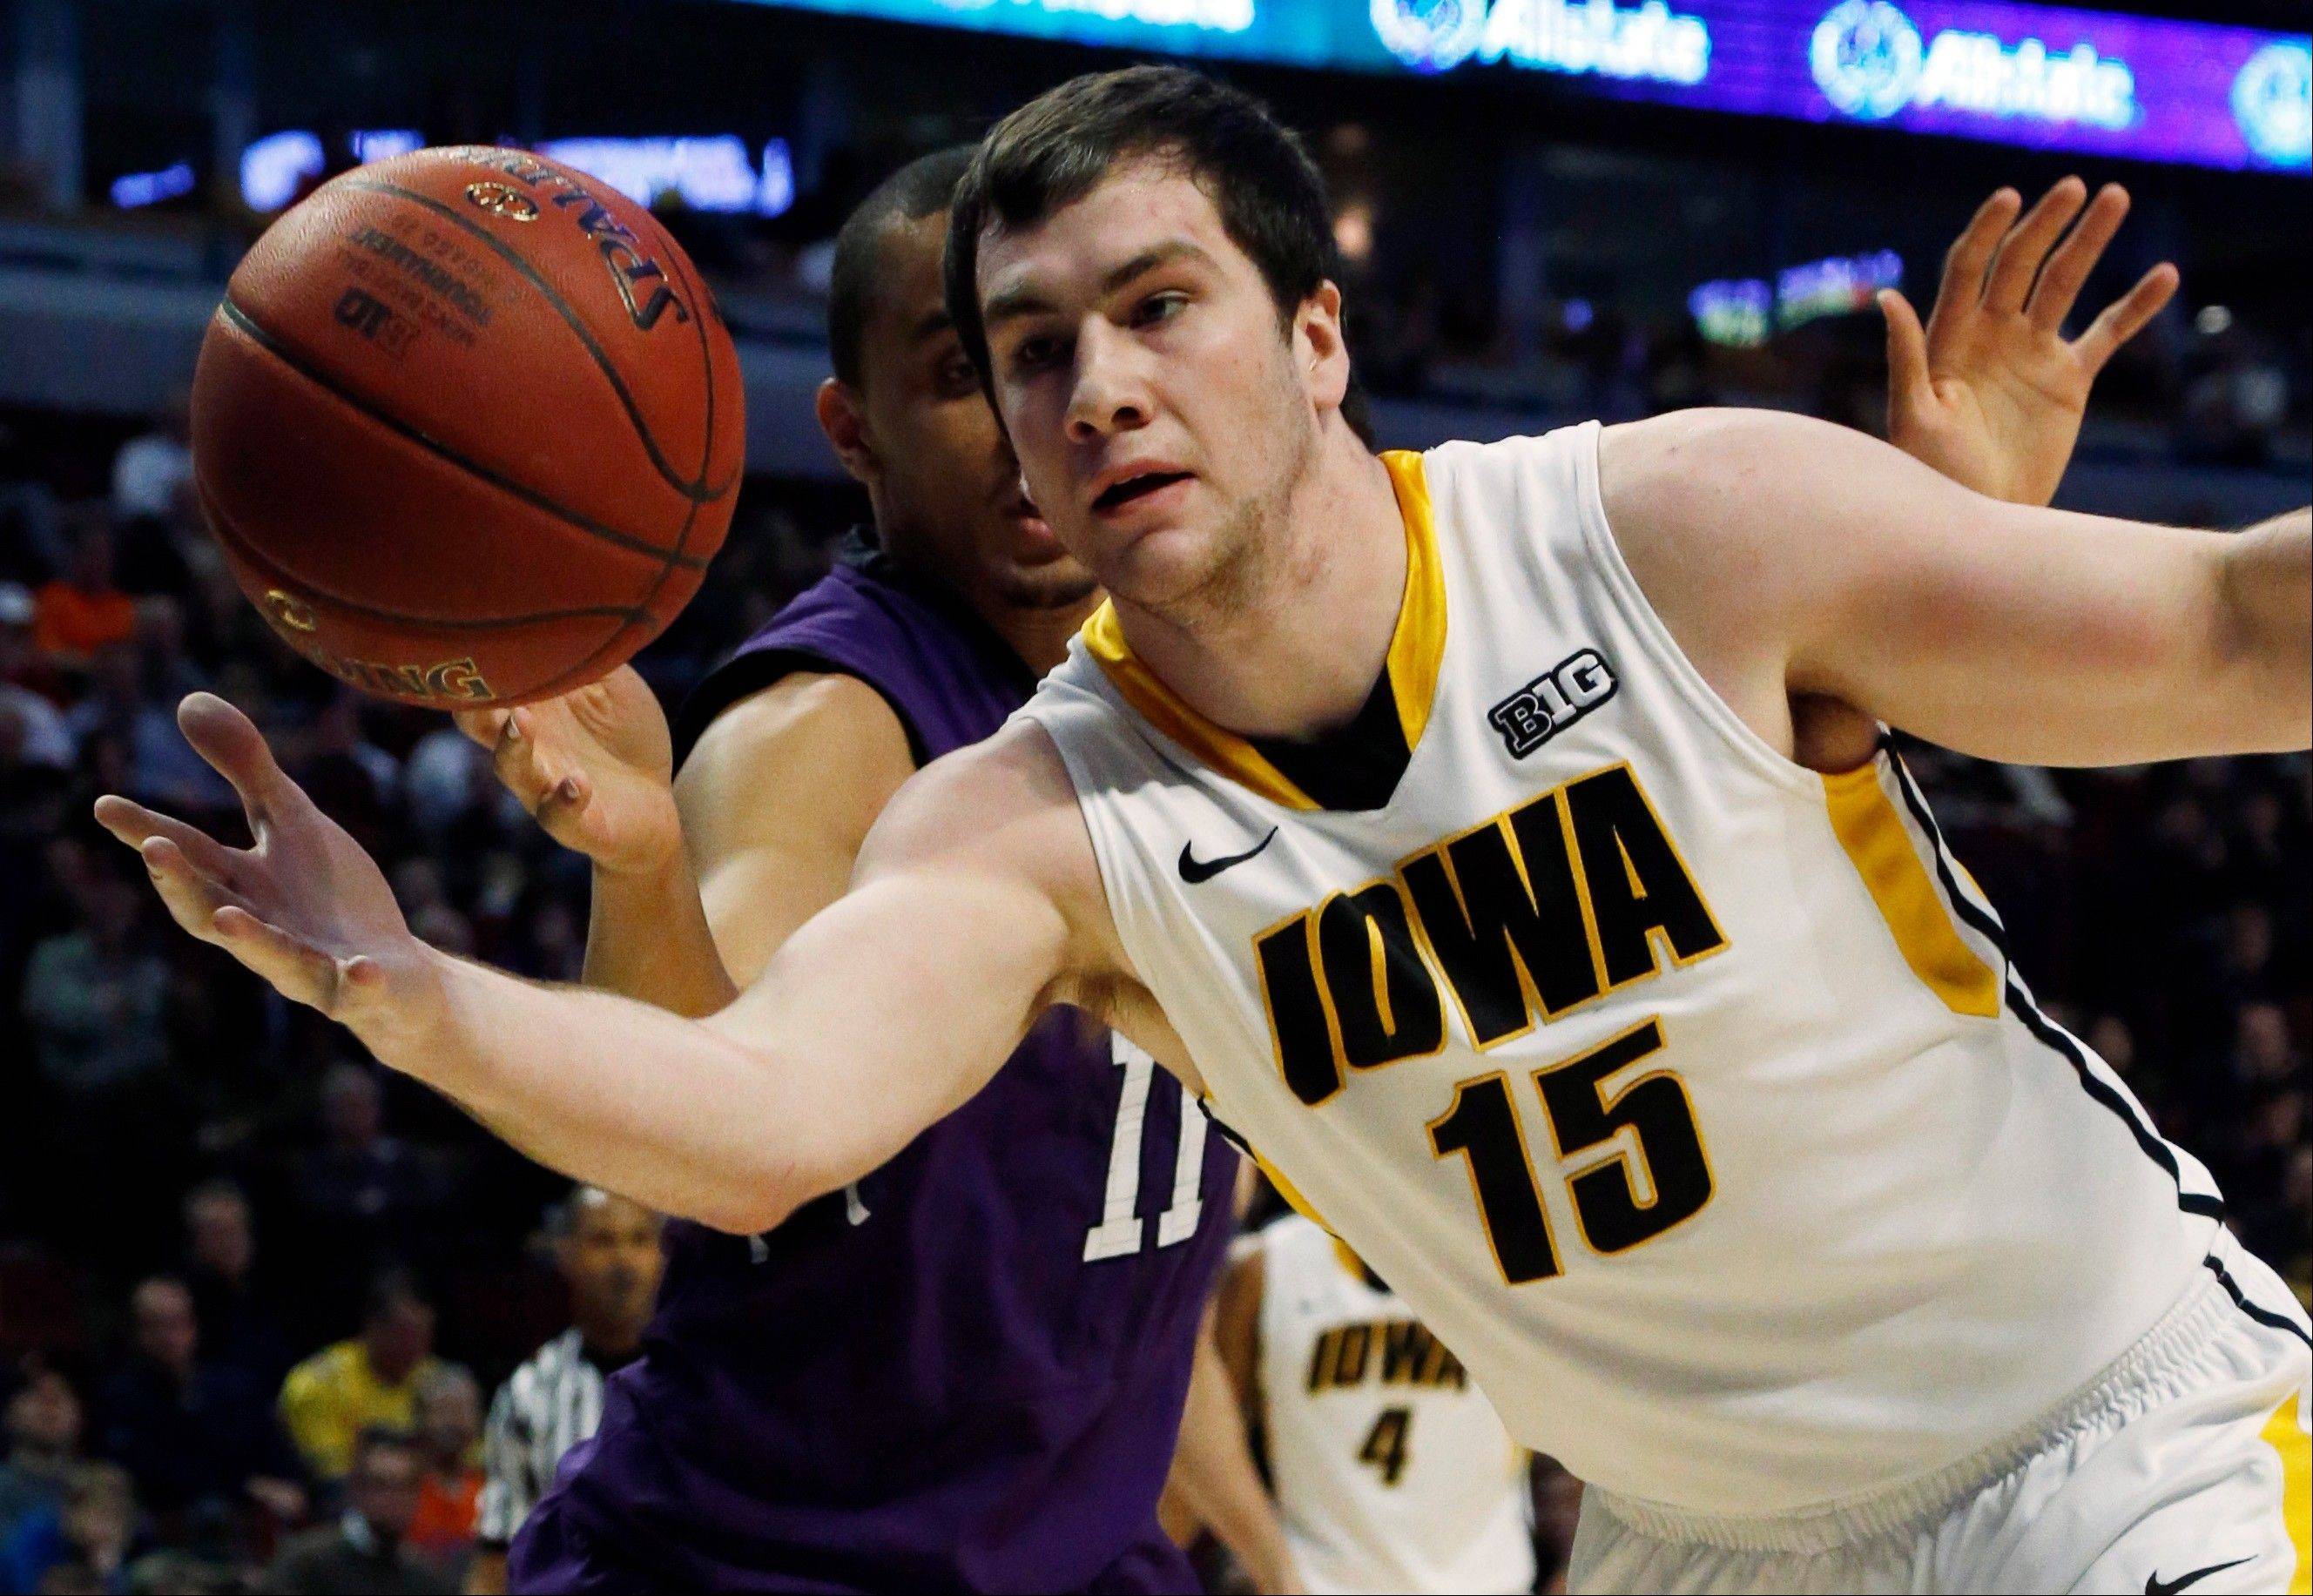 Iowa's Zach McCabe (15) and Northwestern's Reggie Hearn (11) go after a loose ball.